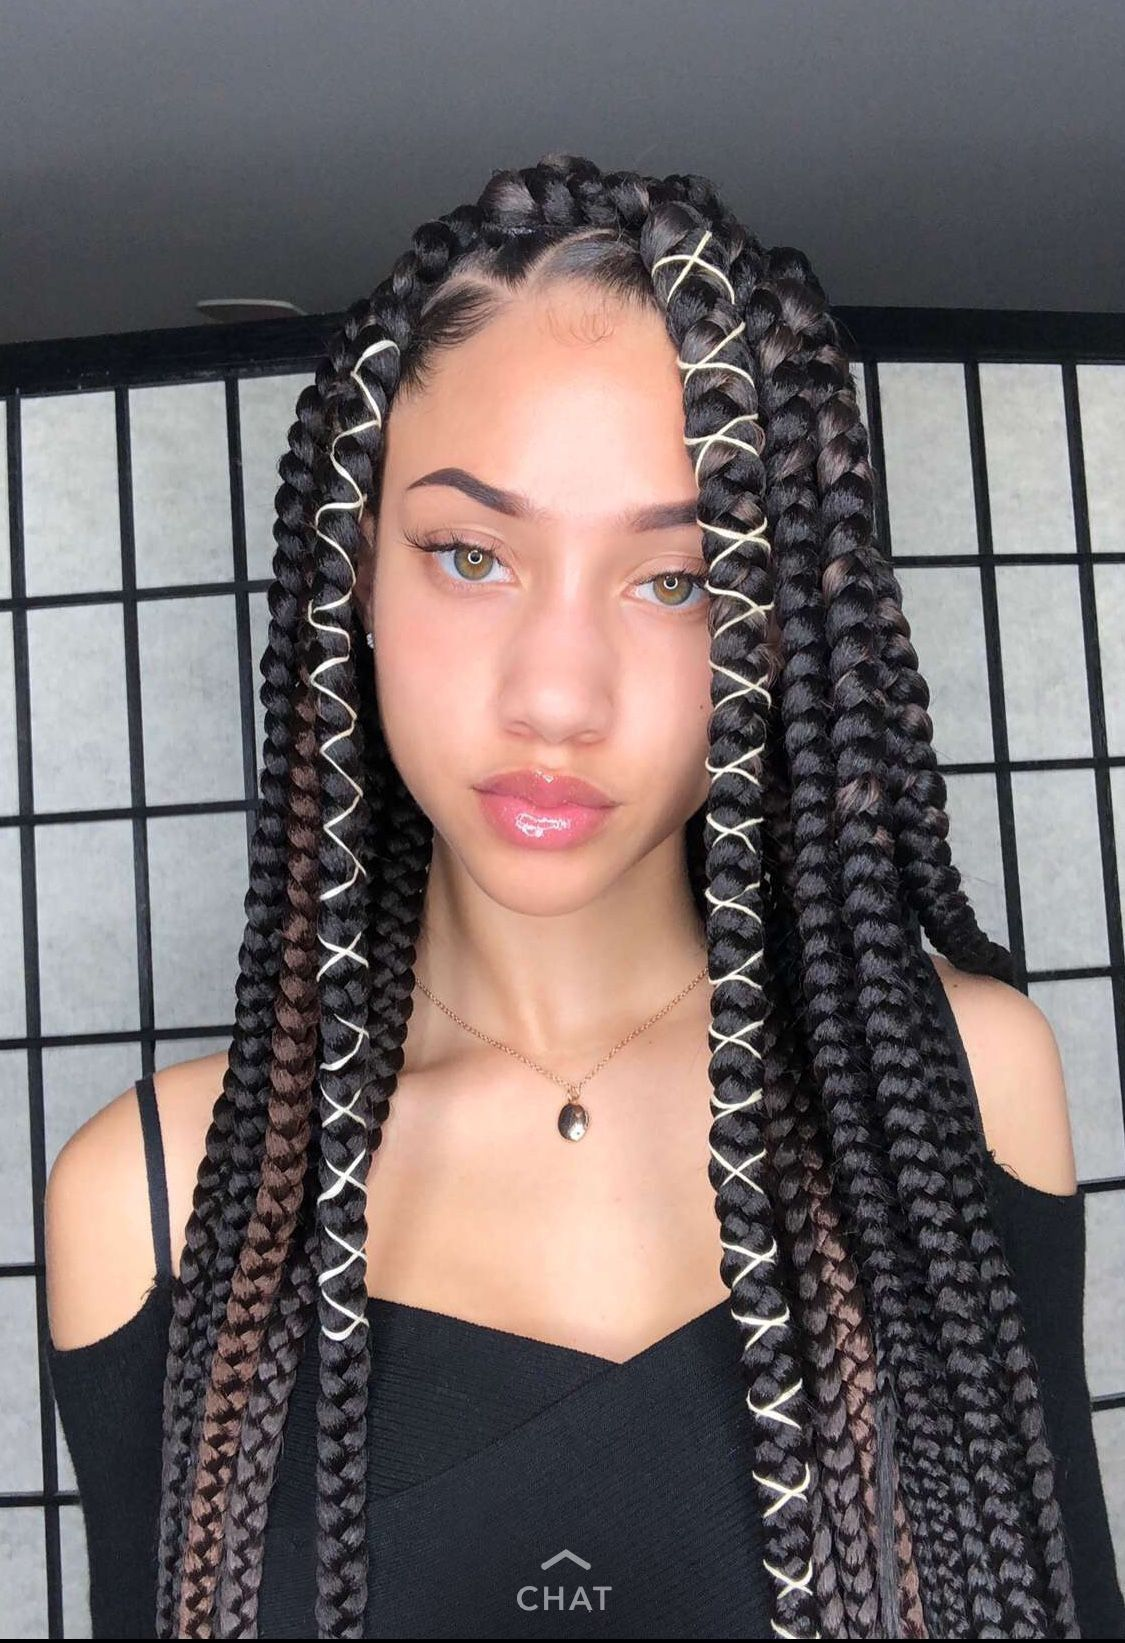 Unique Girl Box Braids Hairstyle 2021 In 2020 Hair Videos Box Braids Hairstyles Cute Little Girl Hairstyles